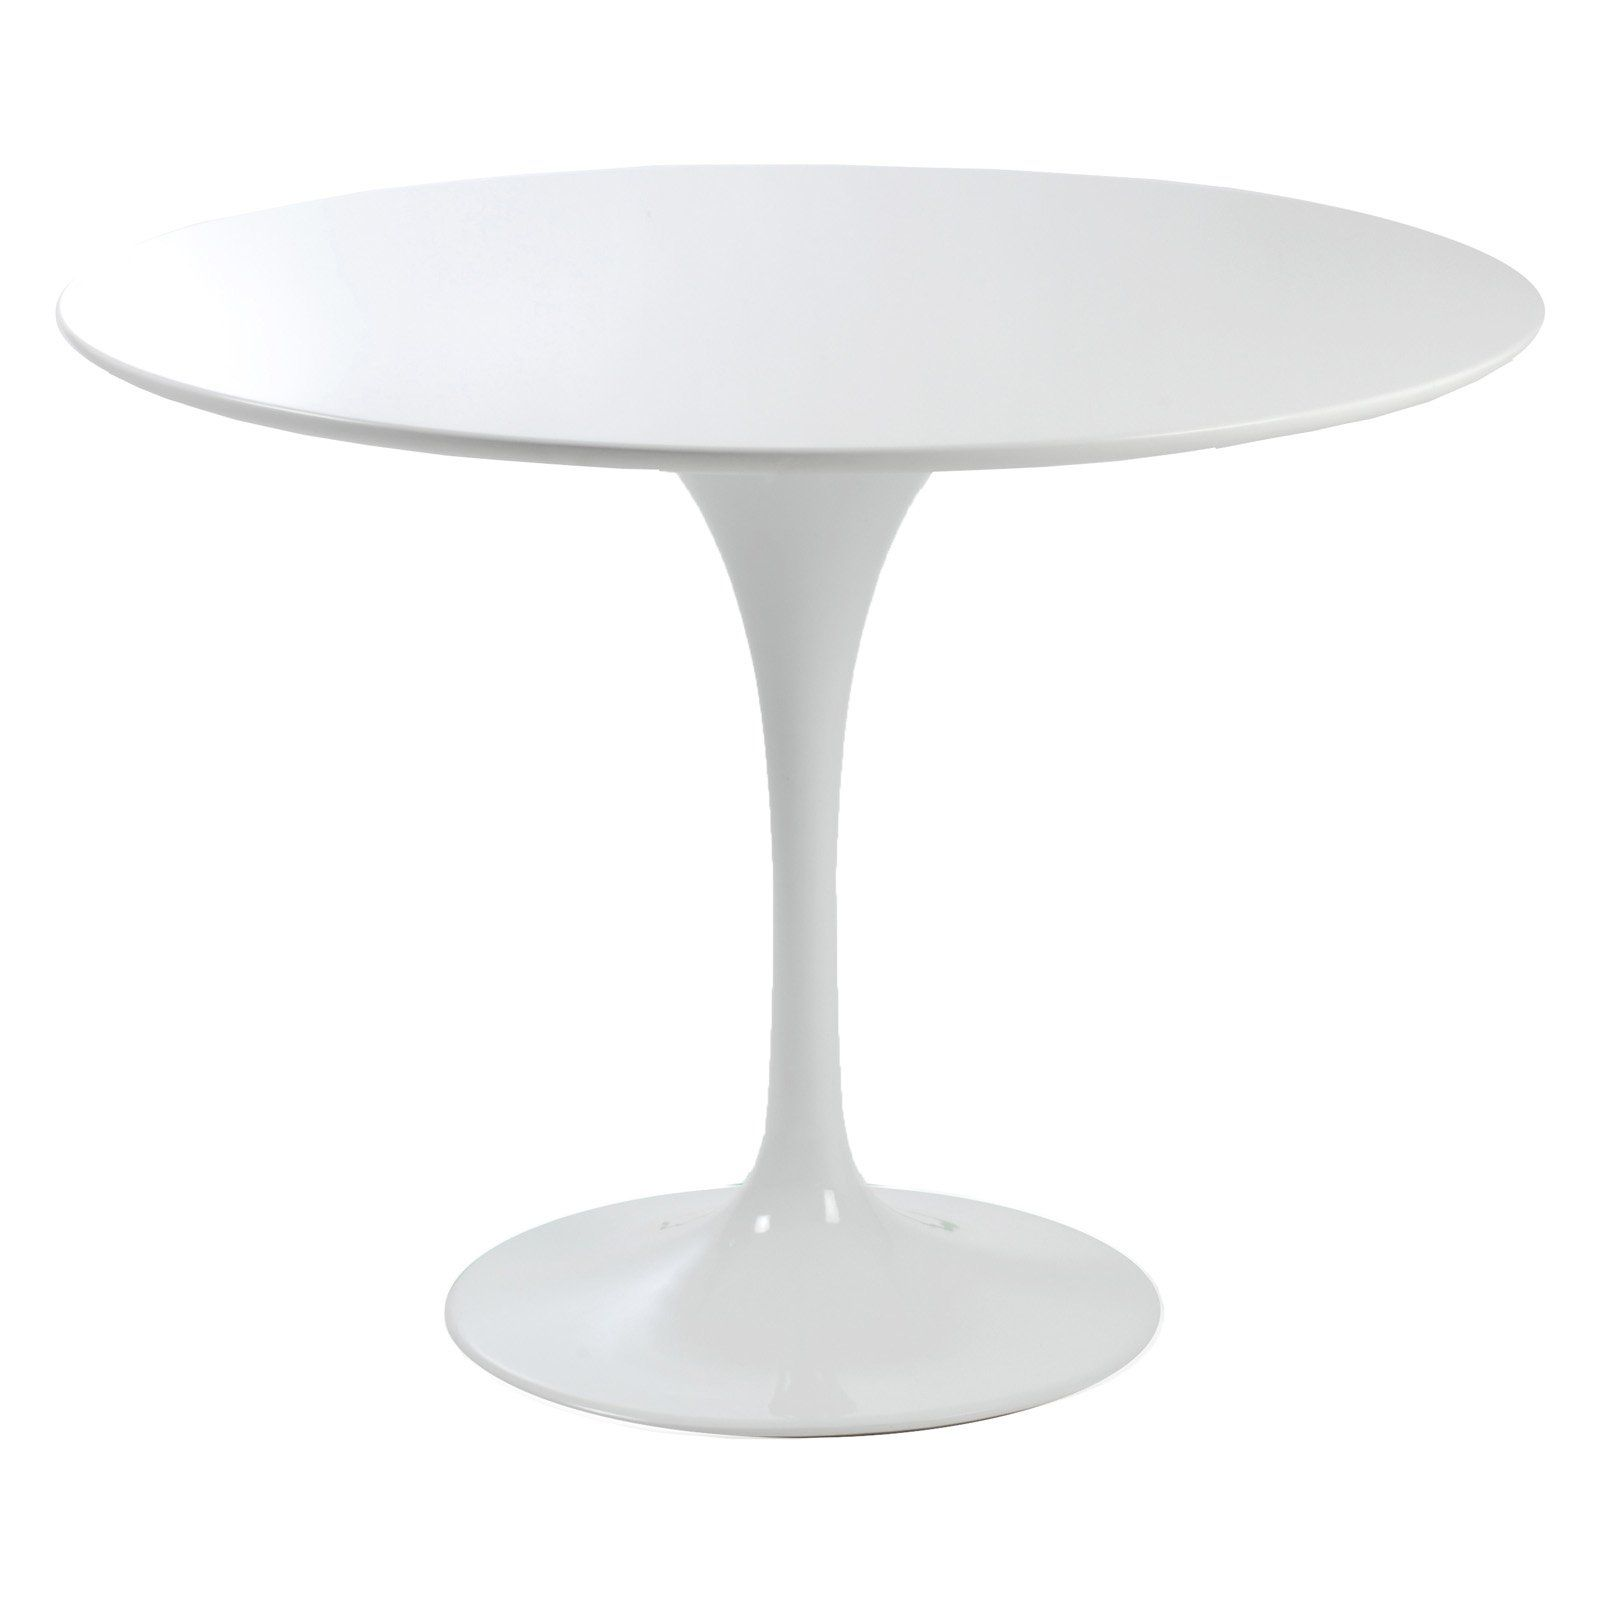 Euro Style Astrid High Gloss White Round Dining Table $350.00 ...